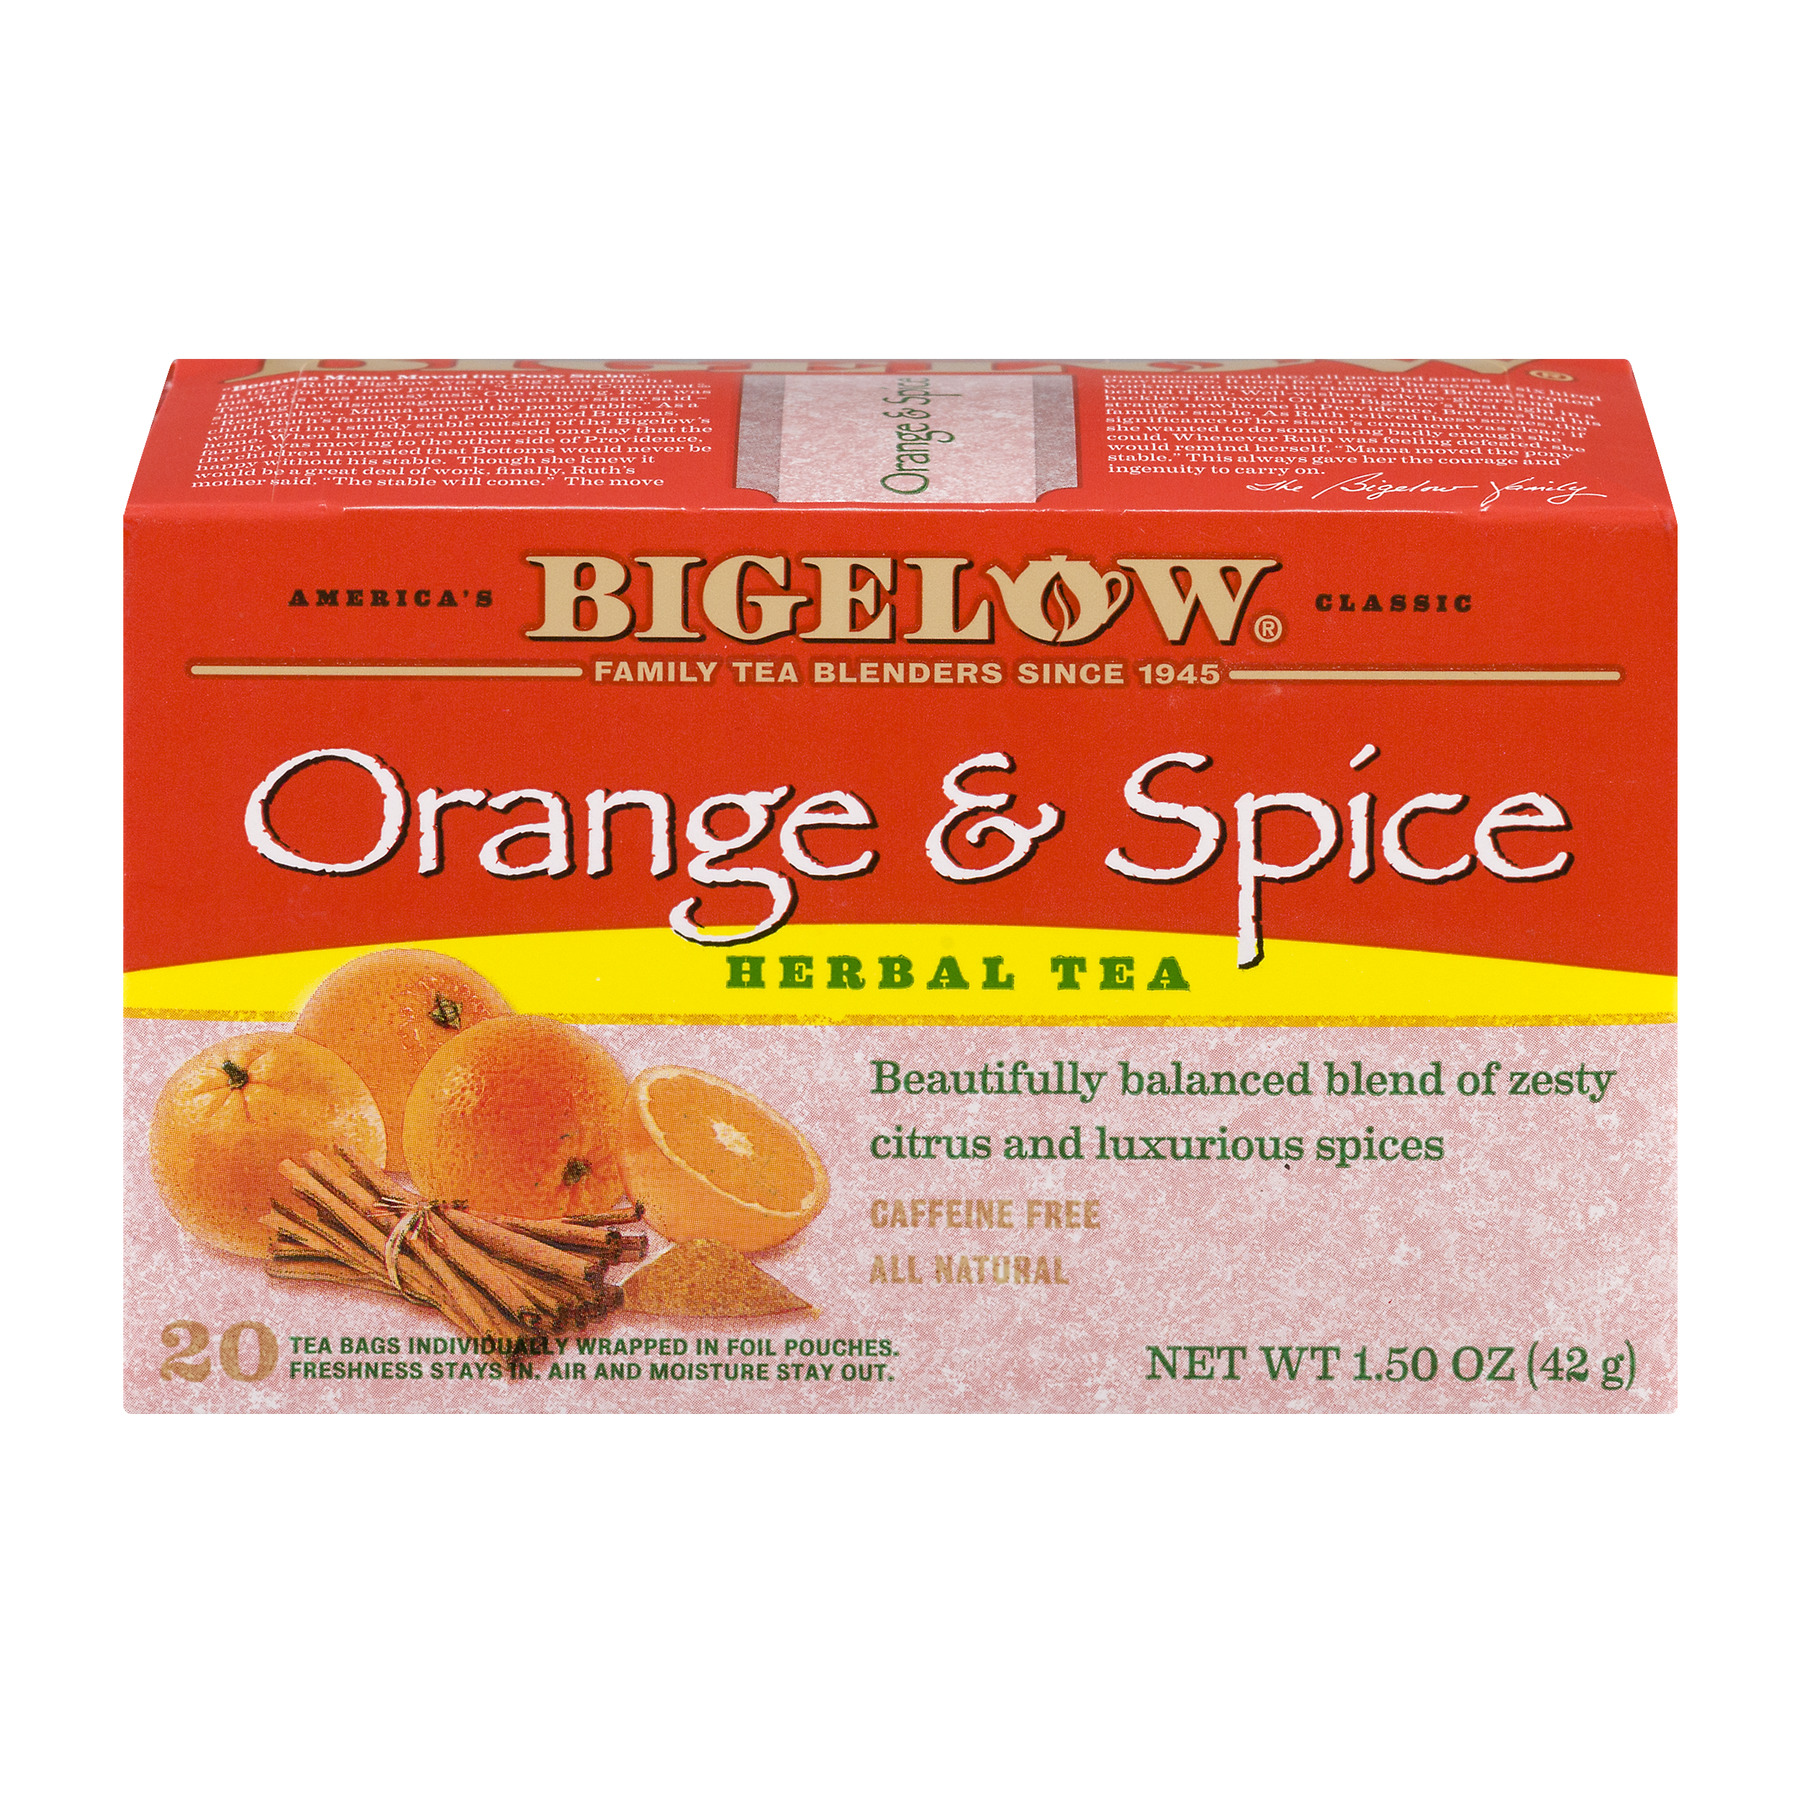 (3 Boxes) ROSE HIPS, SPICES, HIBISCUS, ORANGE PEEL, ROASTED CHICORY, NATURAL ORANGE FLAVORS (SOY LECITHIN).